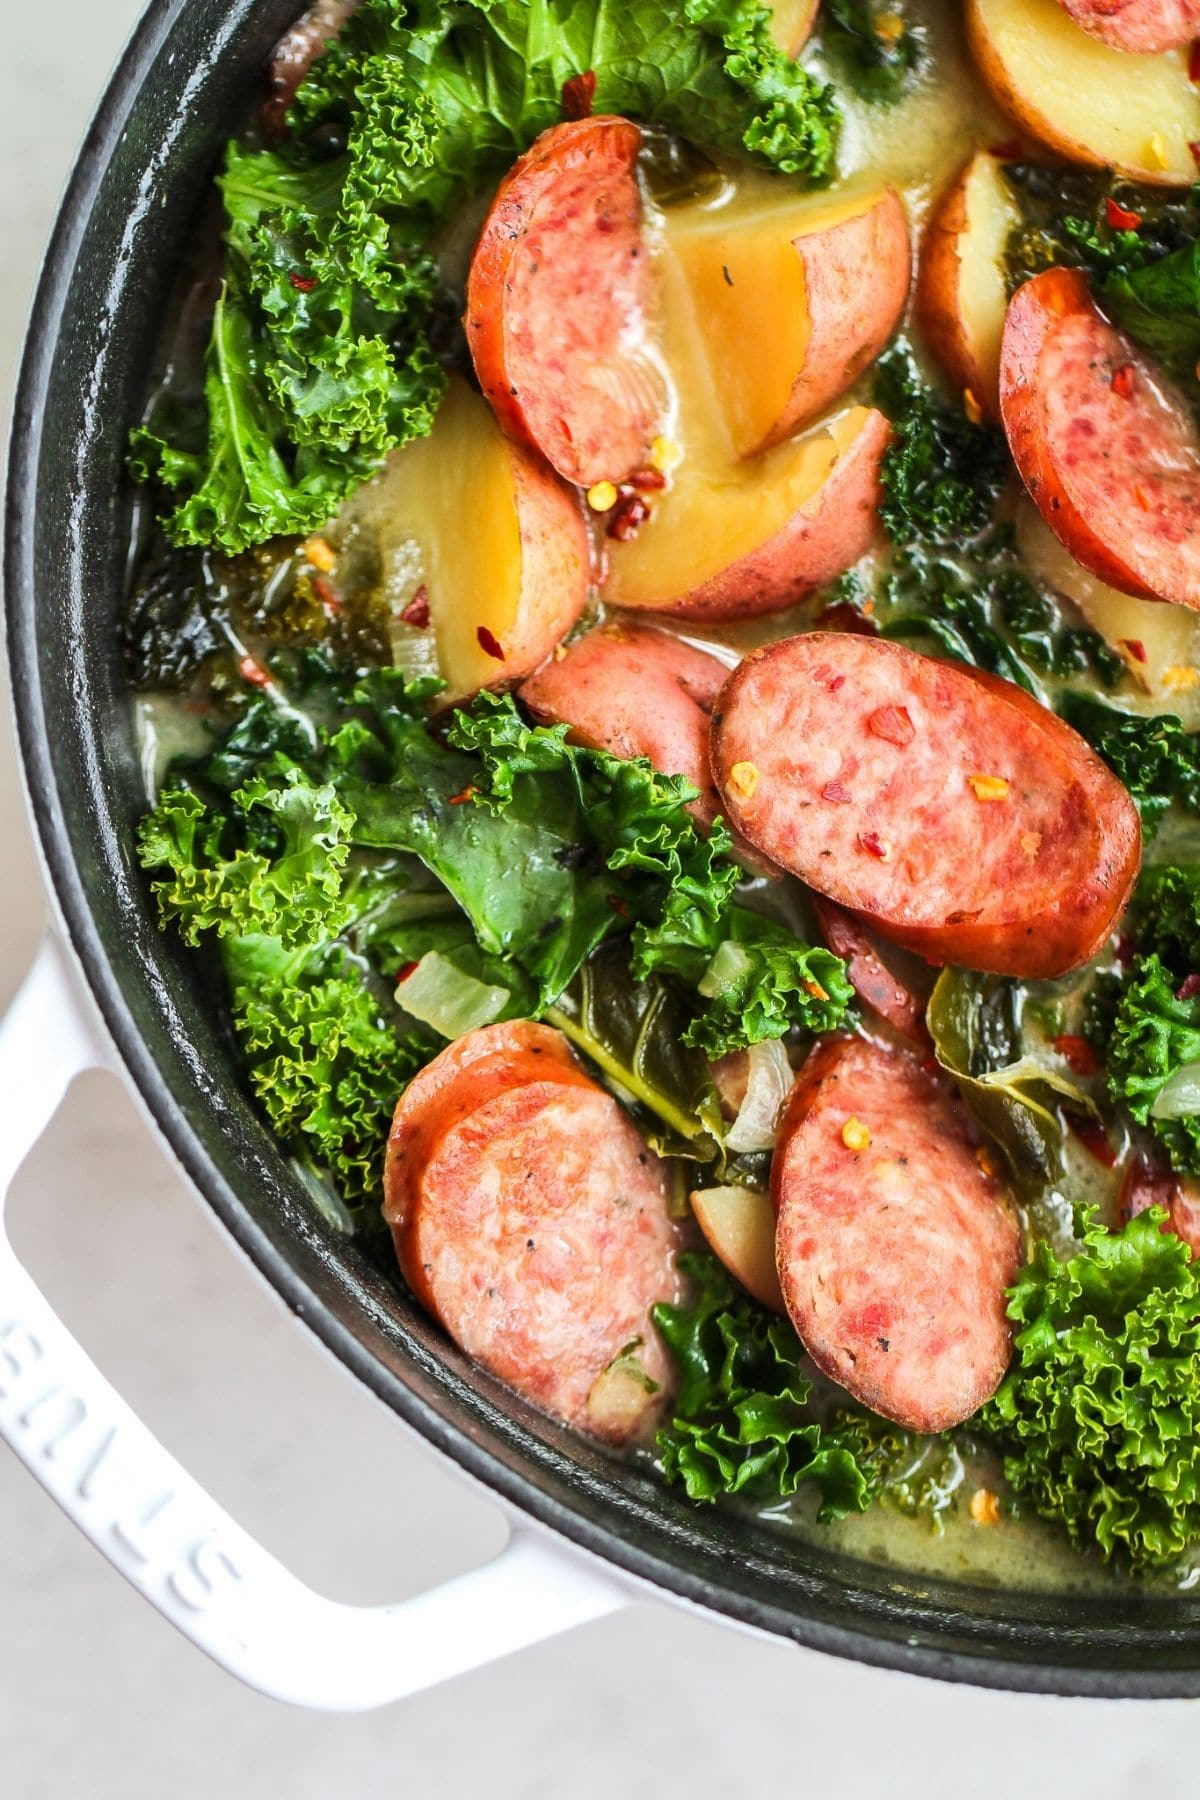 Kale and potatoes in black bowl with sausage